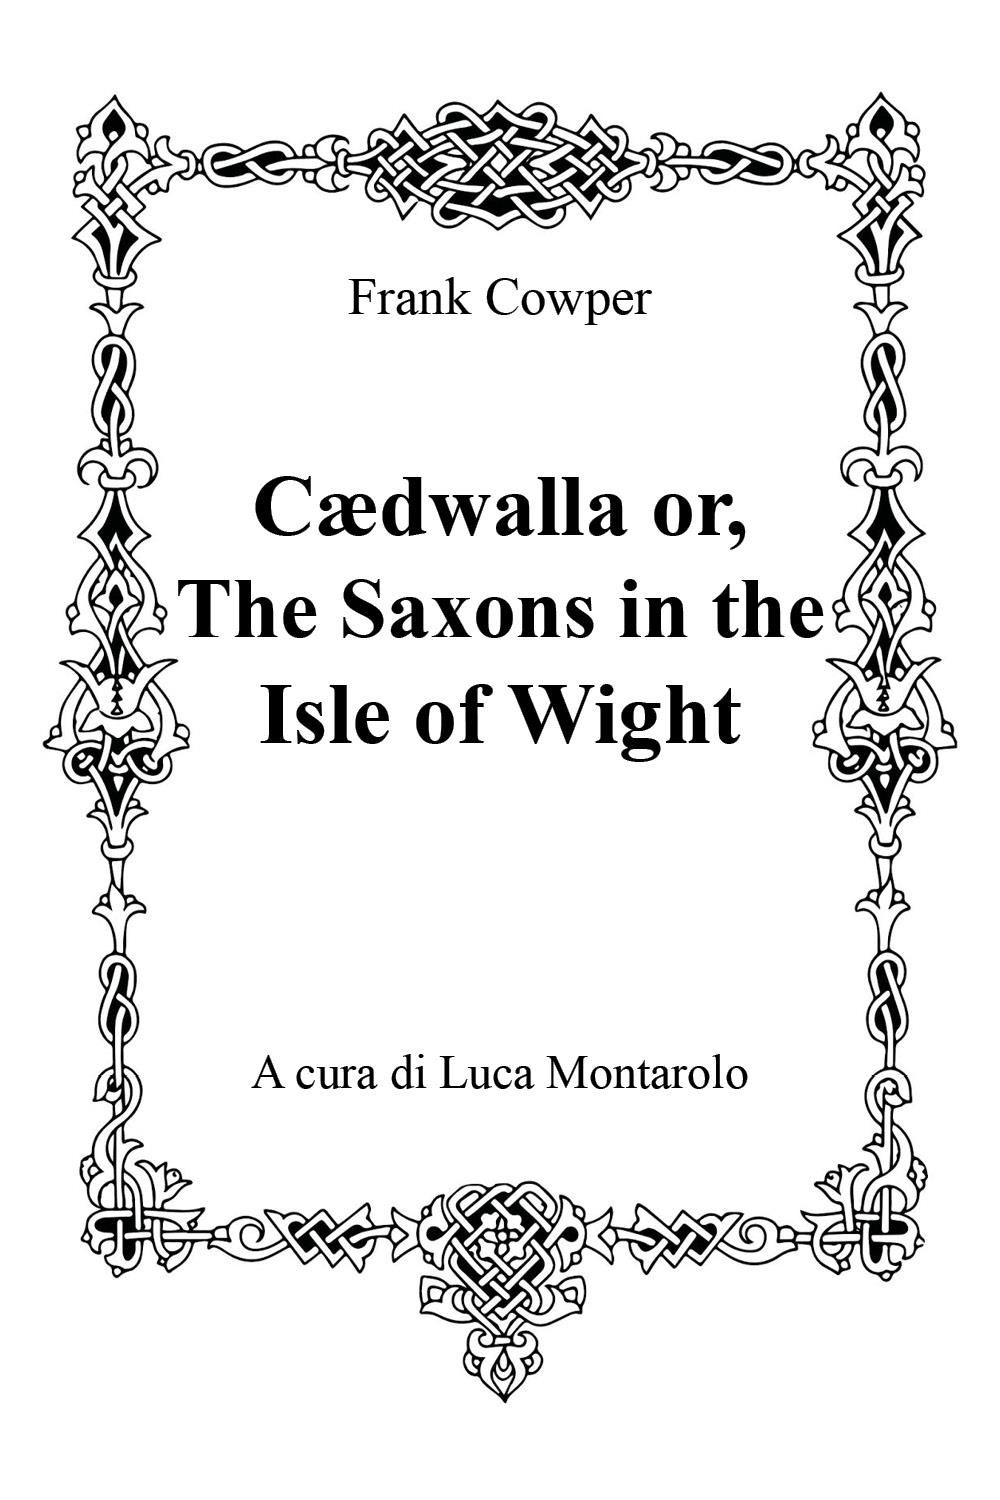 Cædwalla or, The Saxons in the Isle of Wight